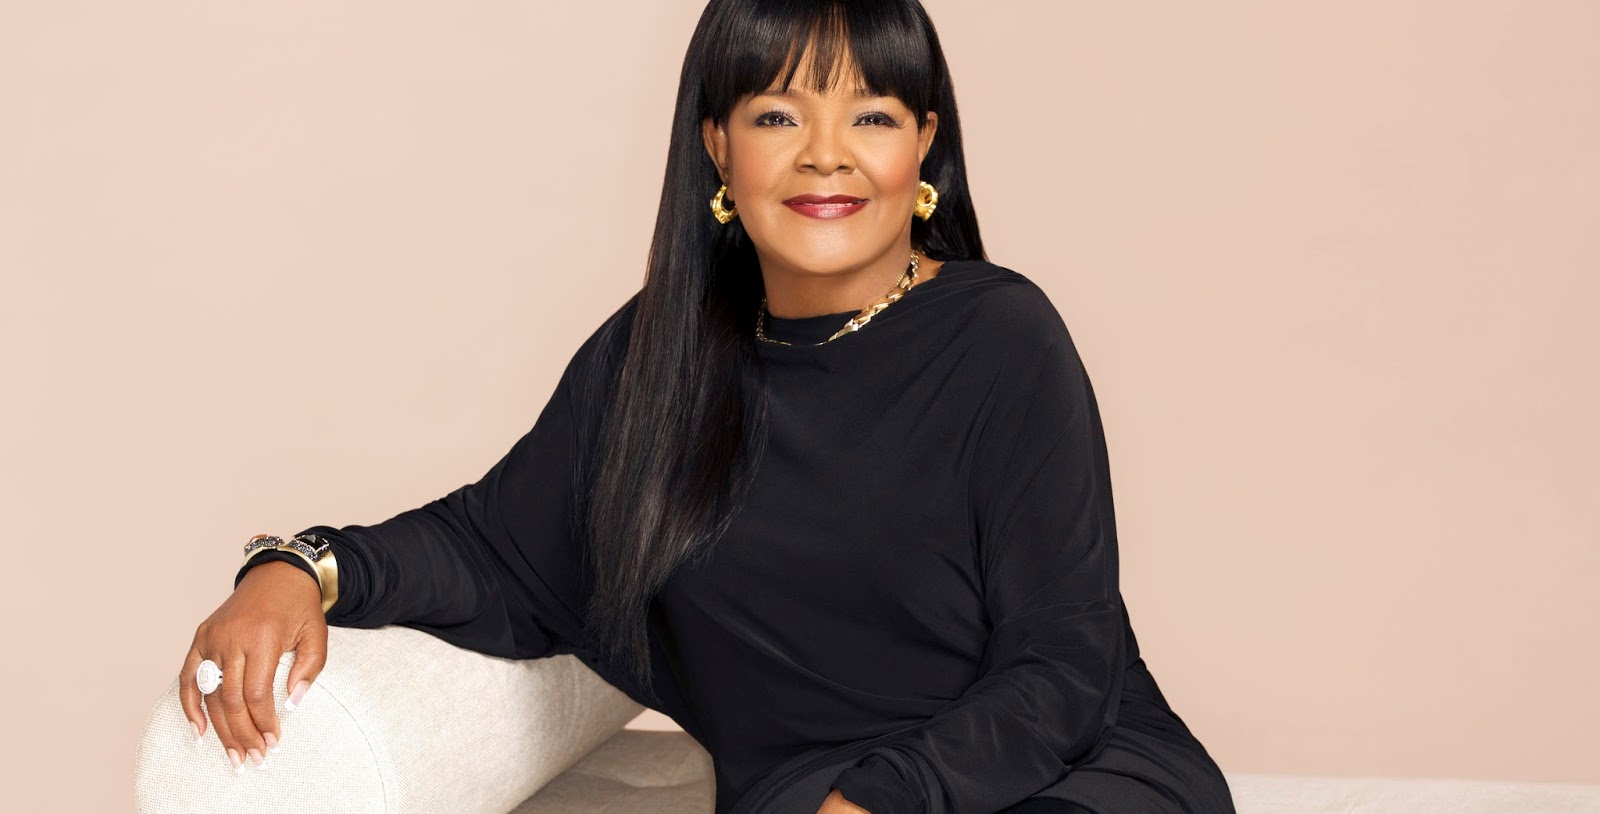 the old black church lord have mercy shirley caesar files lord have mercy shirley caesar files lawsuit to stop violating her u it challenge